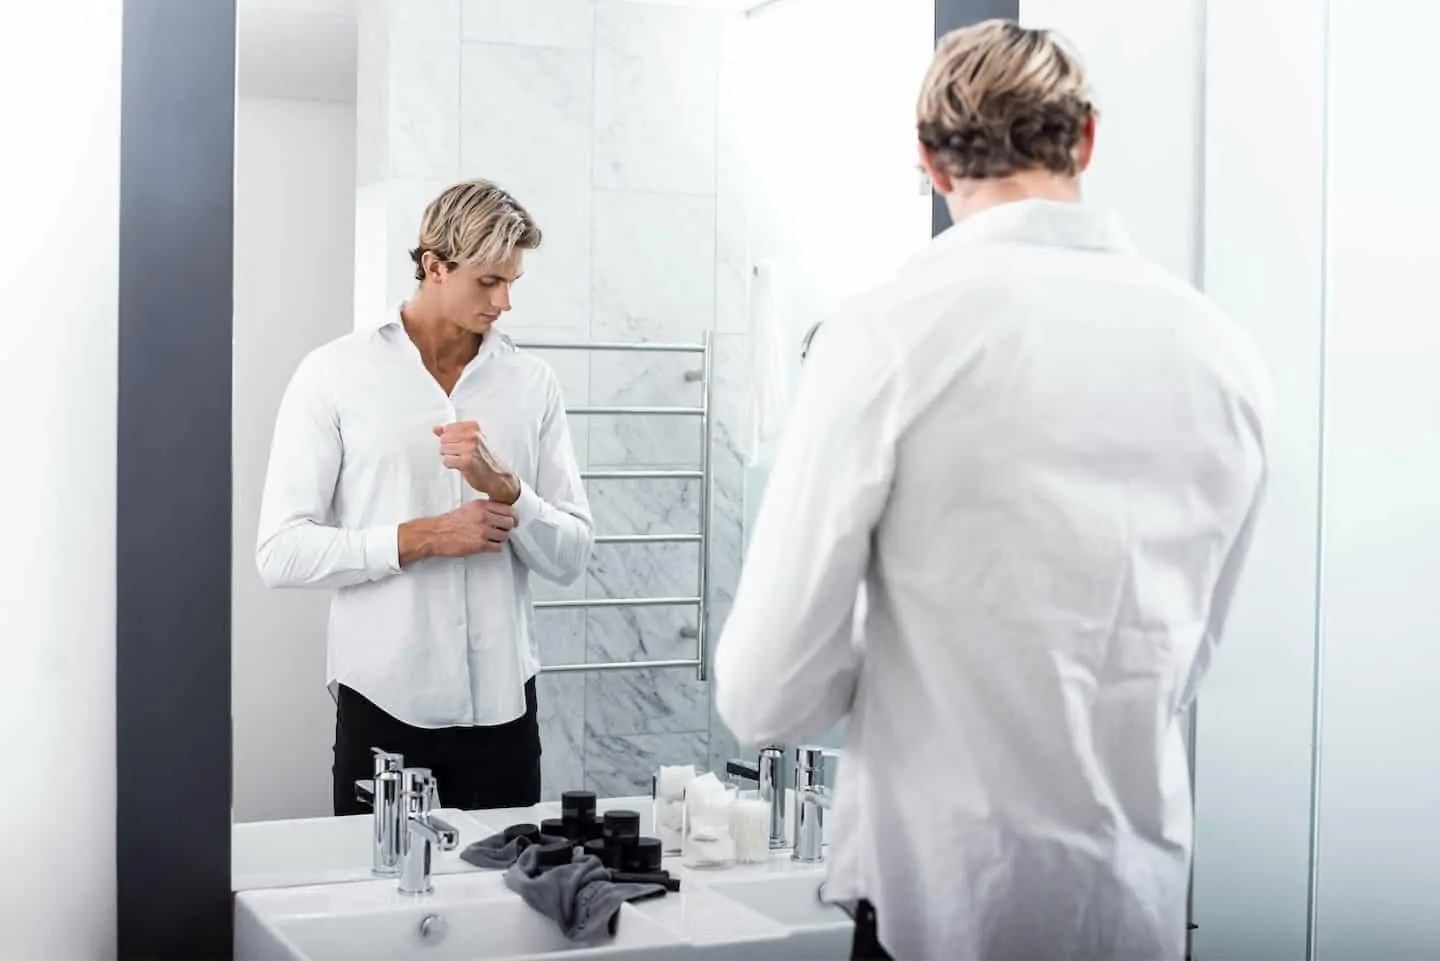 Man standing in front of mirror in white shirt buttoning cuffs